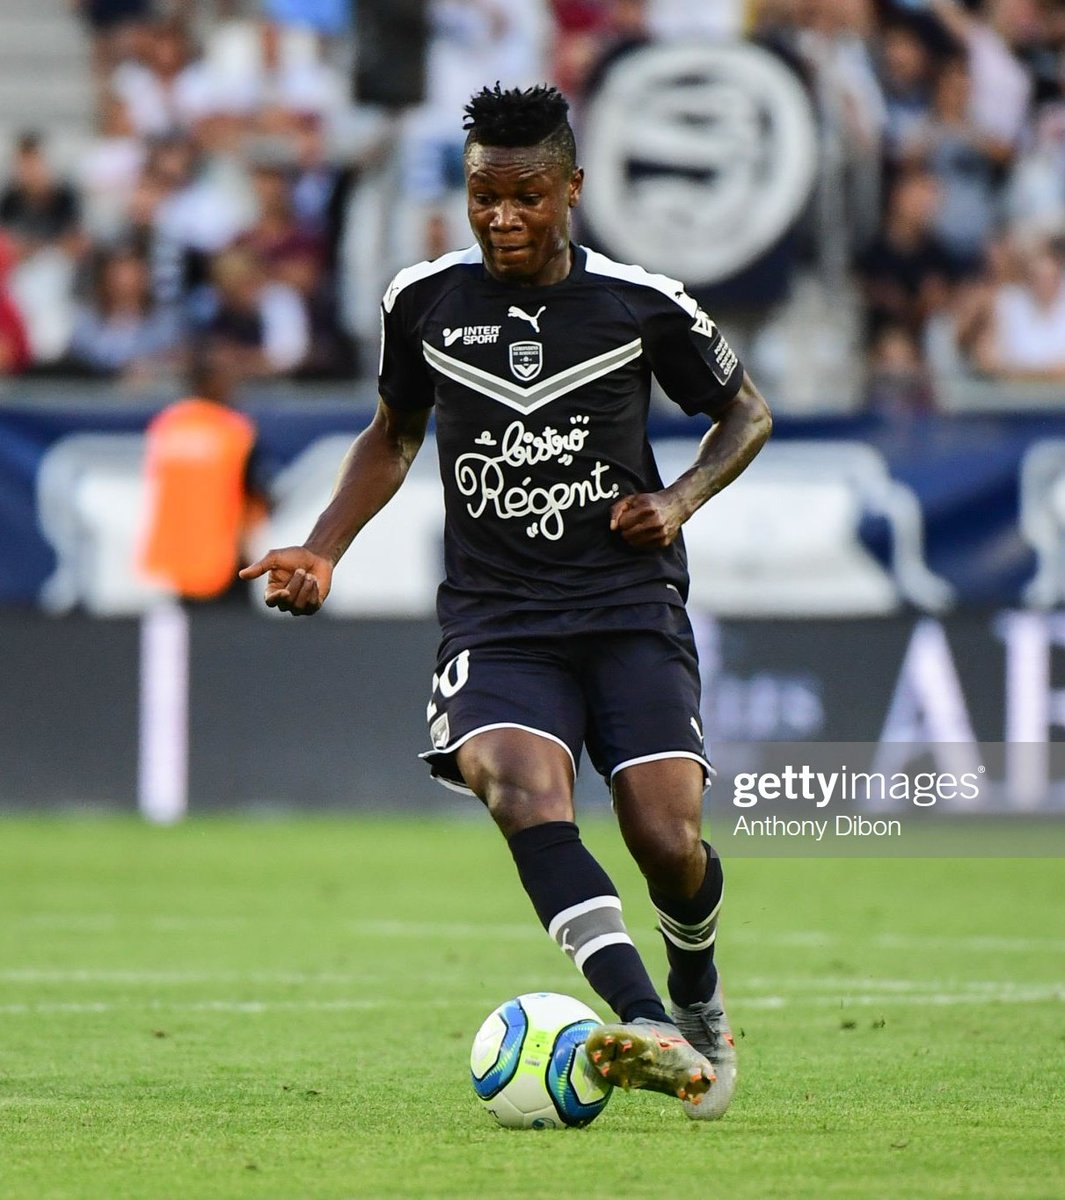 Most Dribbles Won (22) in Europe's  Leagues:  Samuel Kalu  Most Interceptions Made (15) made in Europe's  Leagues:  Wilfred Ndidi  Most Goals (5) in Ligue 1:  Victor Osimhen  Eagles on the rise <br>http://pic.twitter.com/9q8yjuHaAz